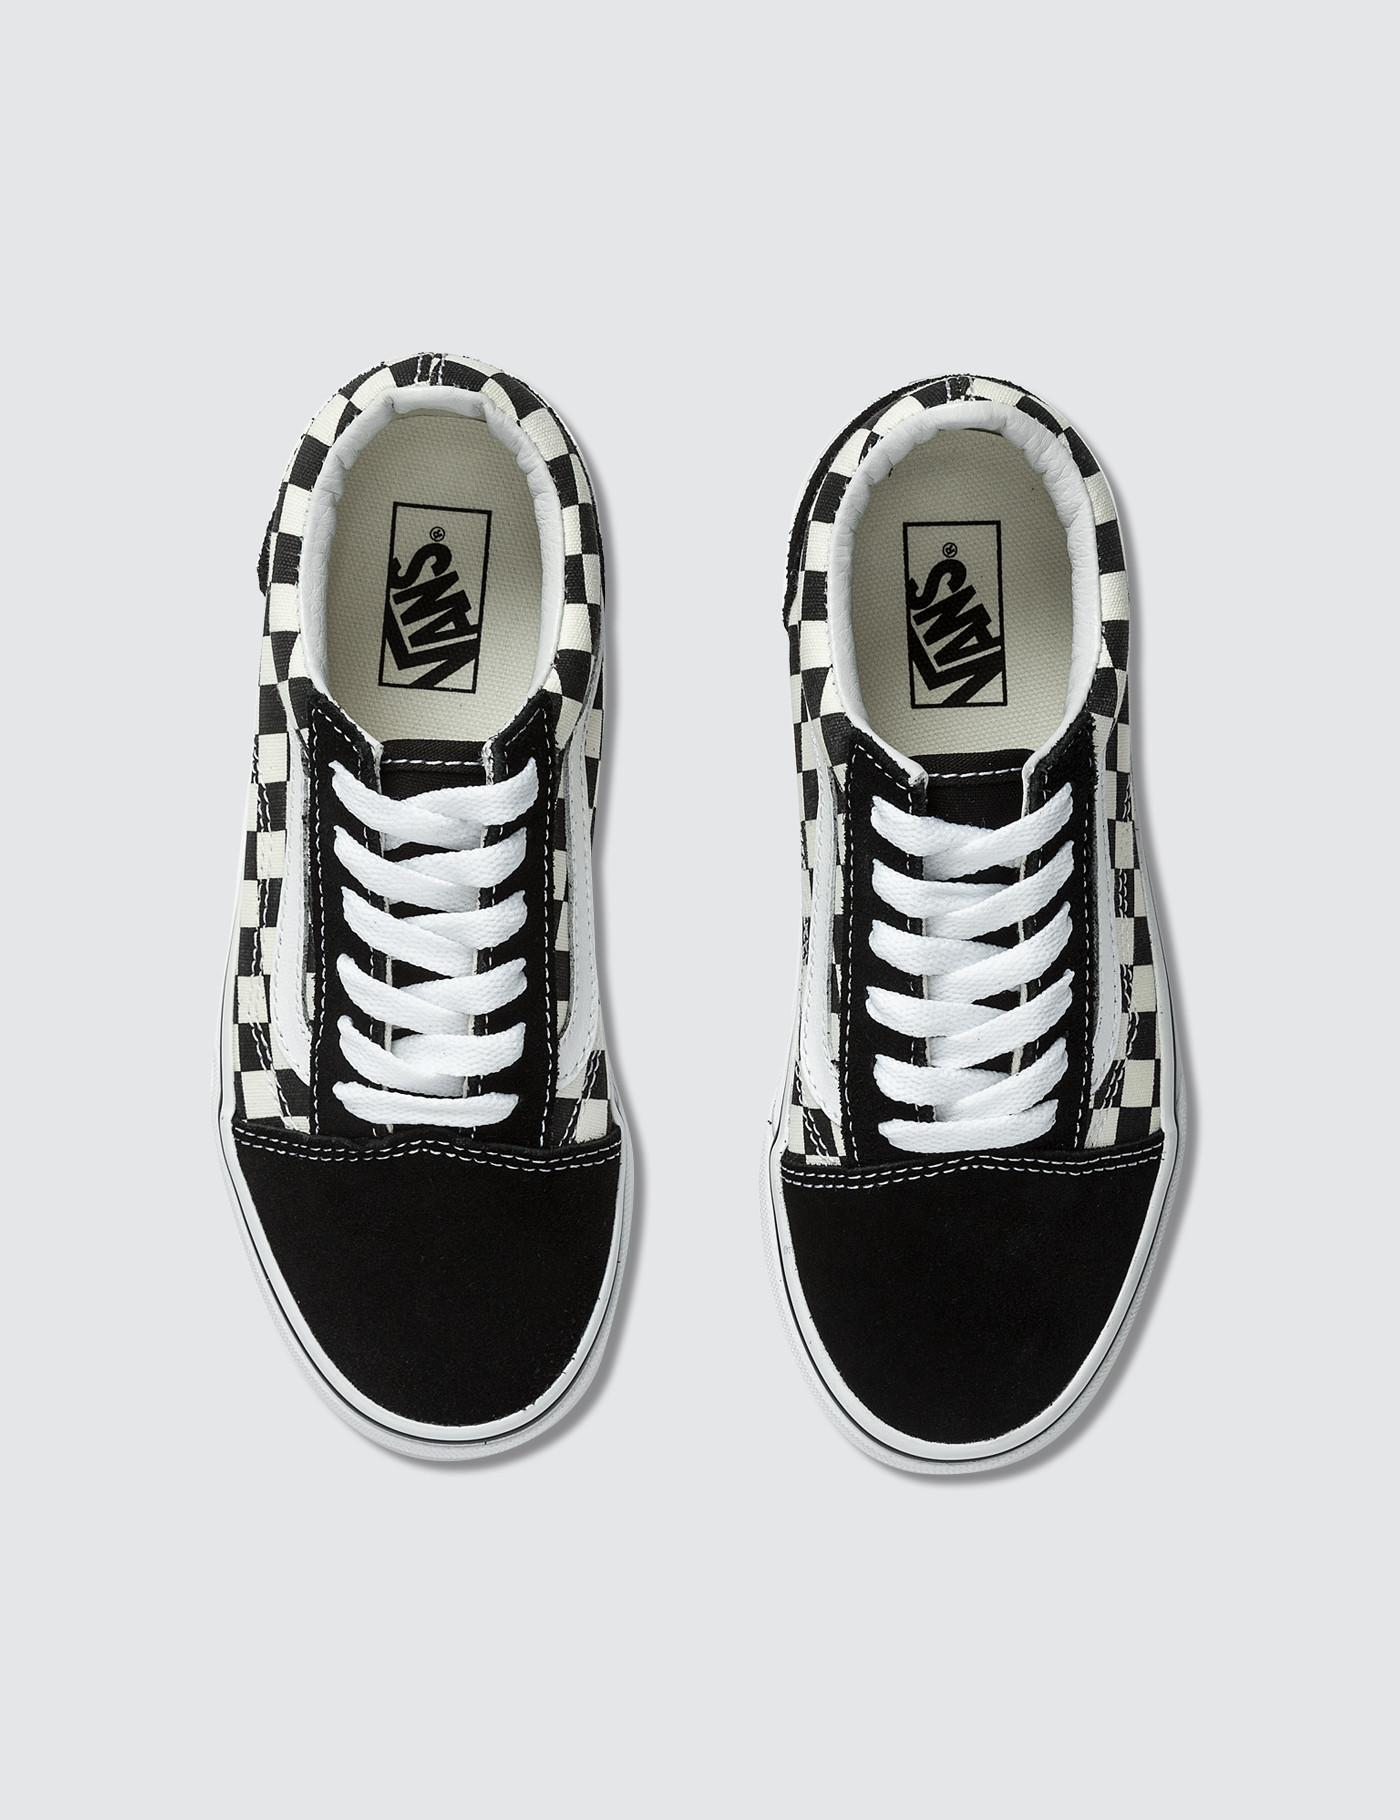 906f2a2b5f Lyst - Vans Anaheim Old Skool Checkerboard in Black for Men - Save 43%